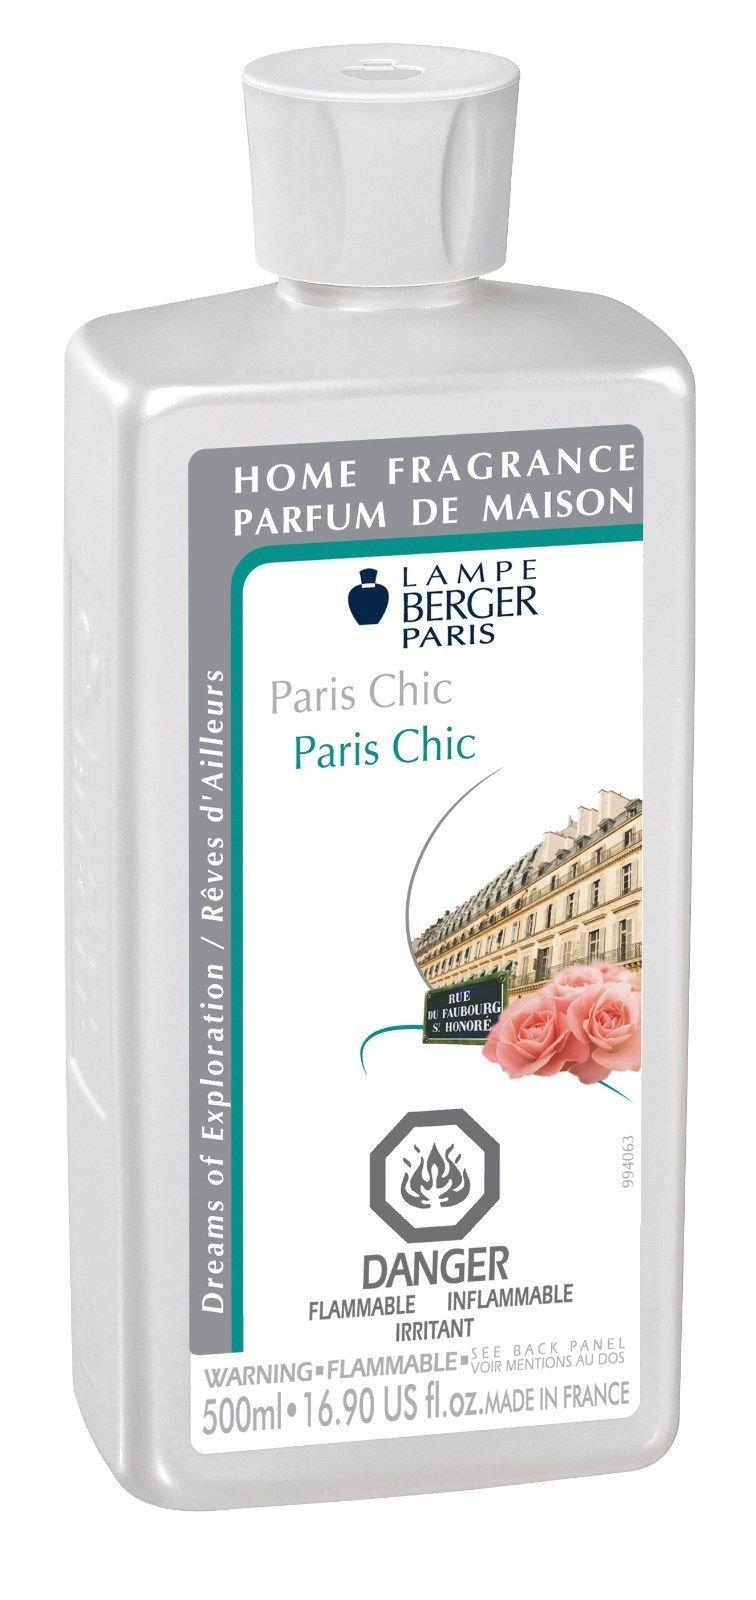 Paris Chic Lampe Berger Fragrance Oil 16.90 Fl Oz (6) by Lampe Berger